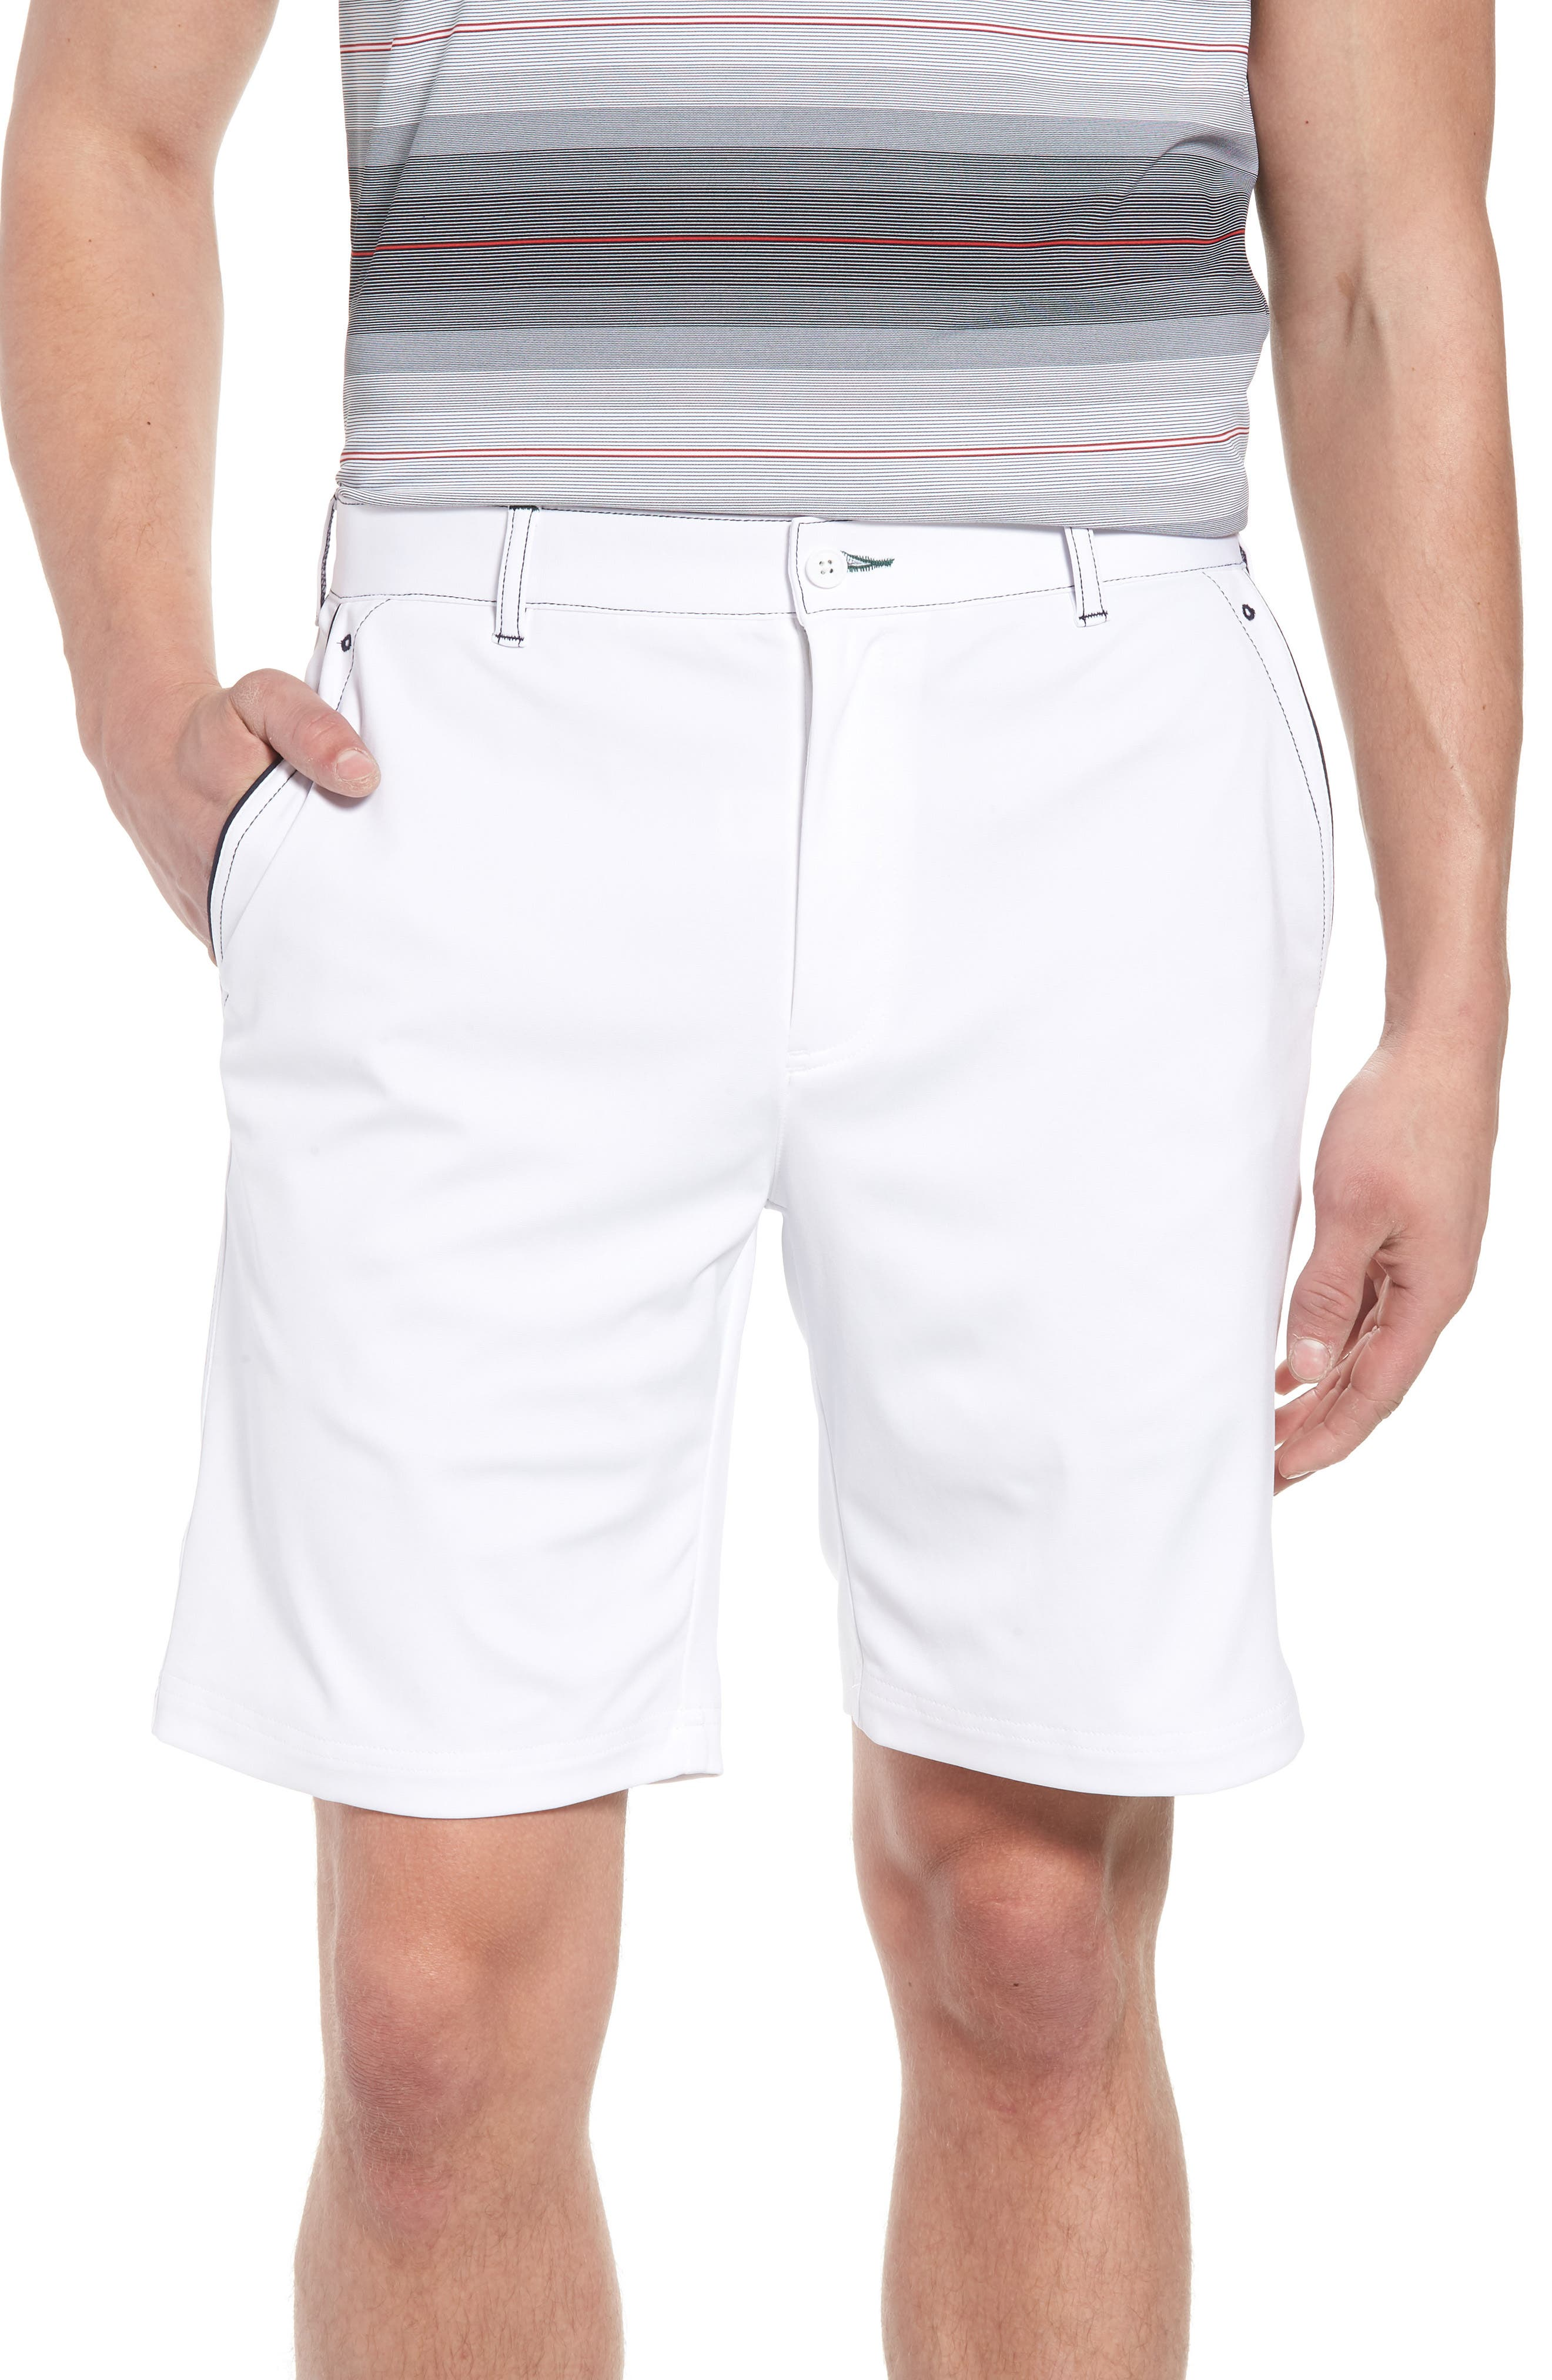 Trim Fit Tech Chino Shorts,                         Main,                         color, White